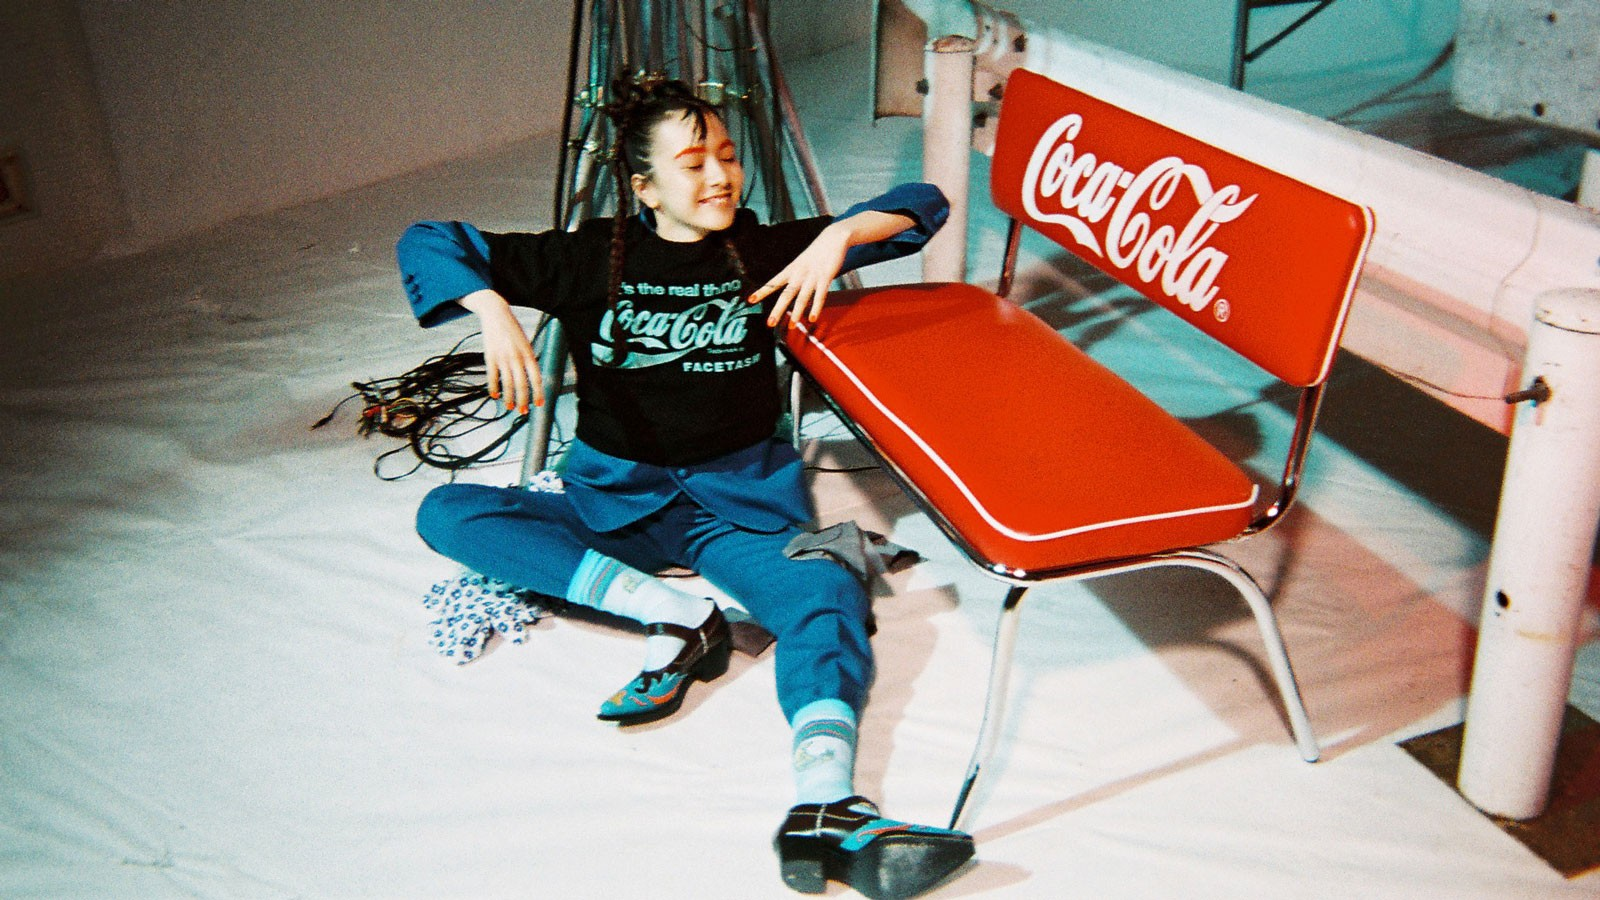 Coca-Cola Head of Fashion Licensing Interview kate dwyer global feature